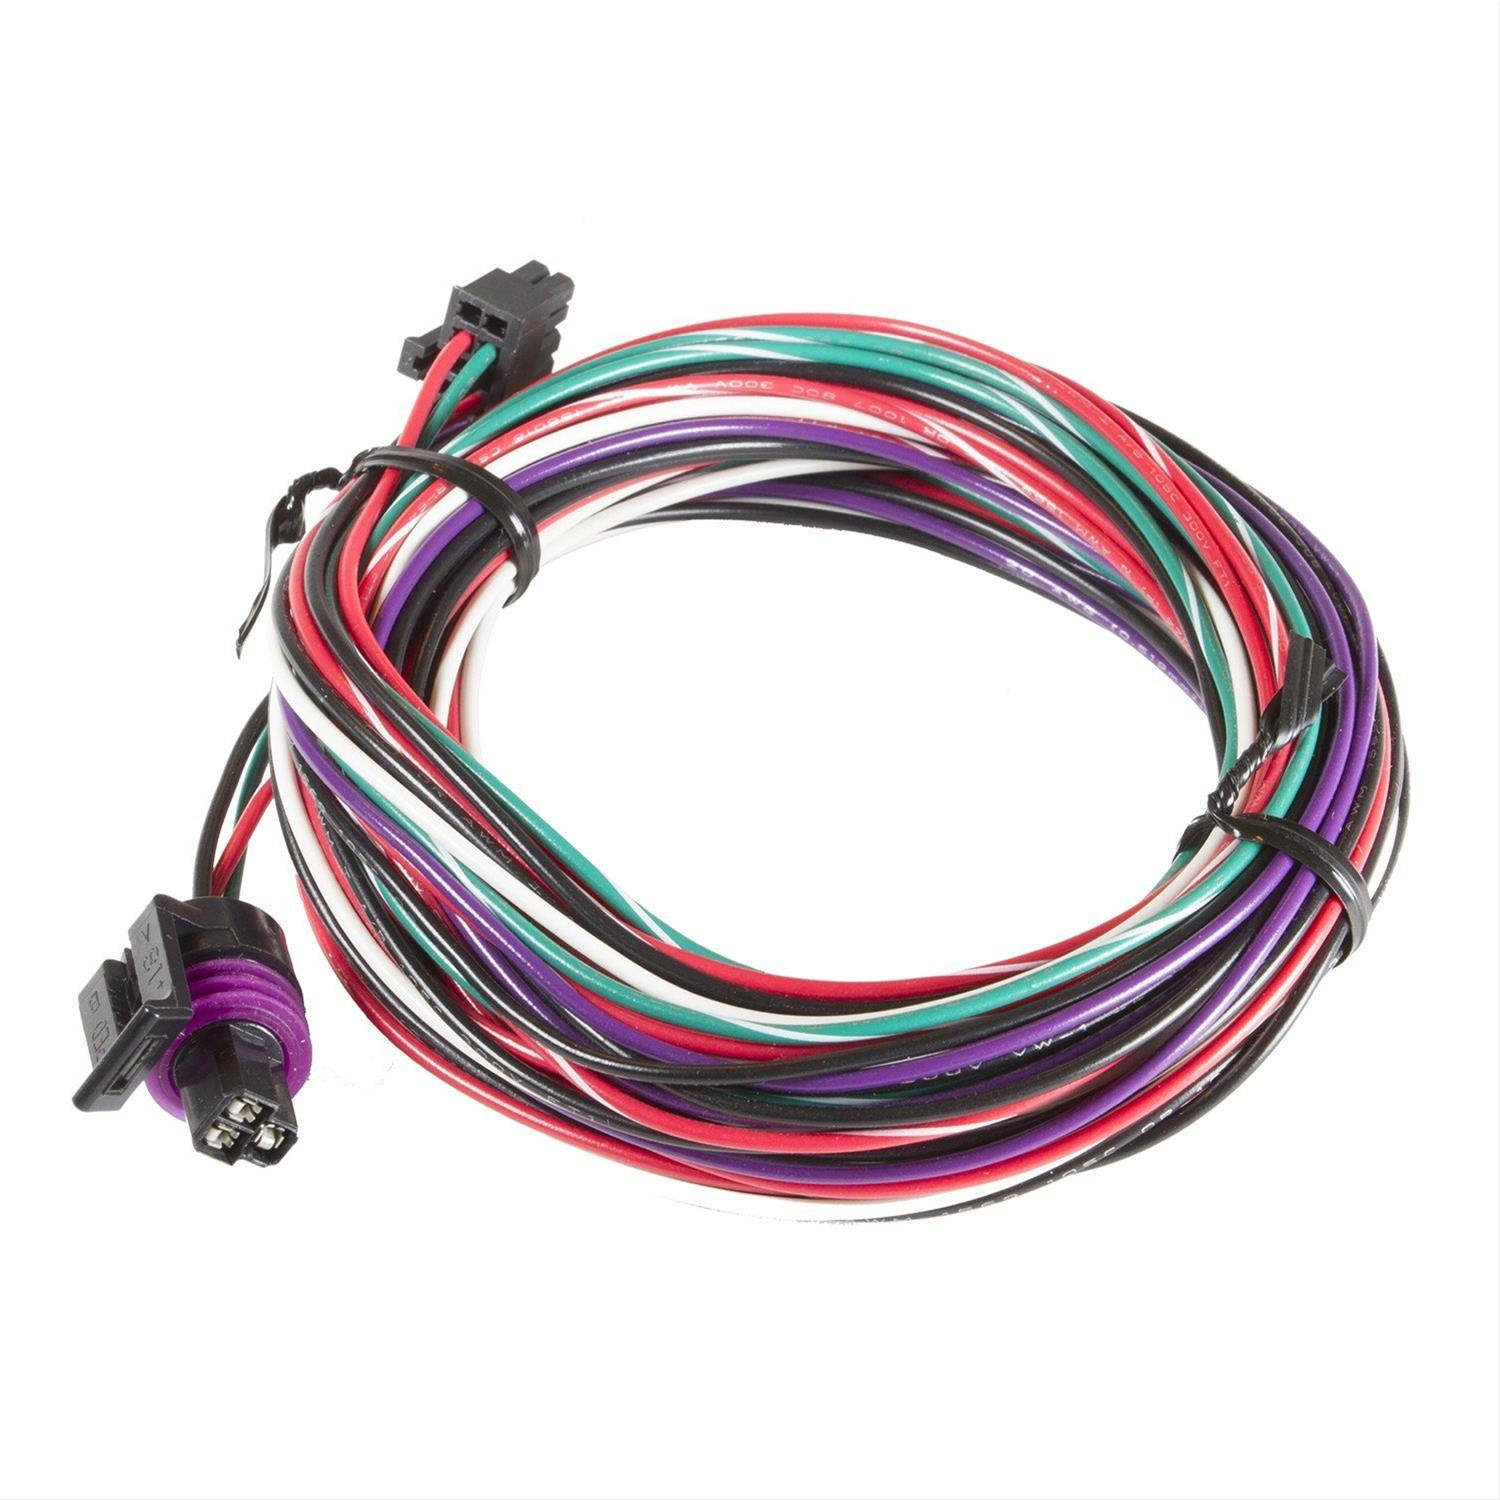 hight resolution of autometer spek pro boost gauge wiring harnesses p19320 free shipping on orders over 99 at summit racing